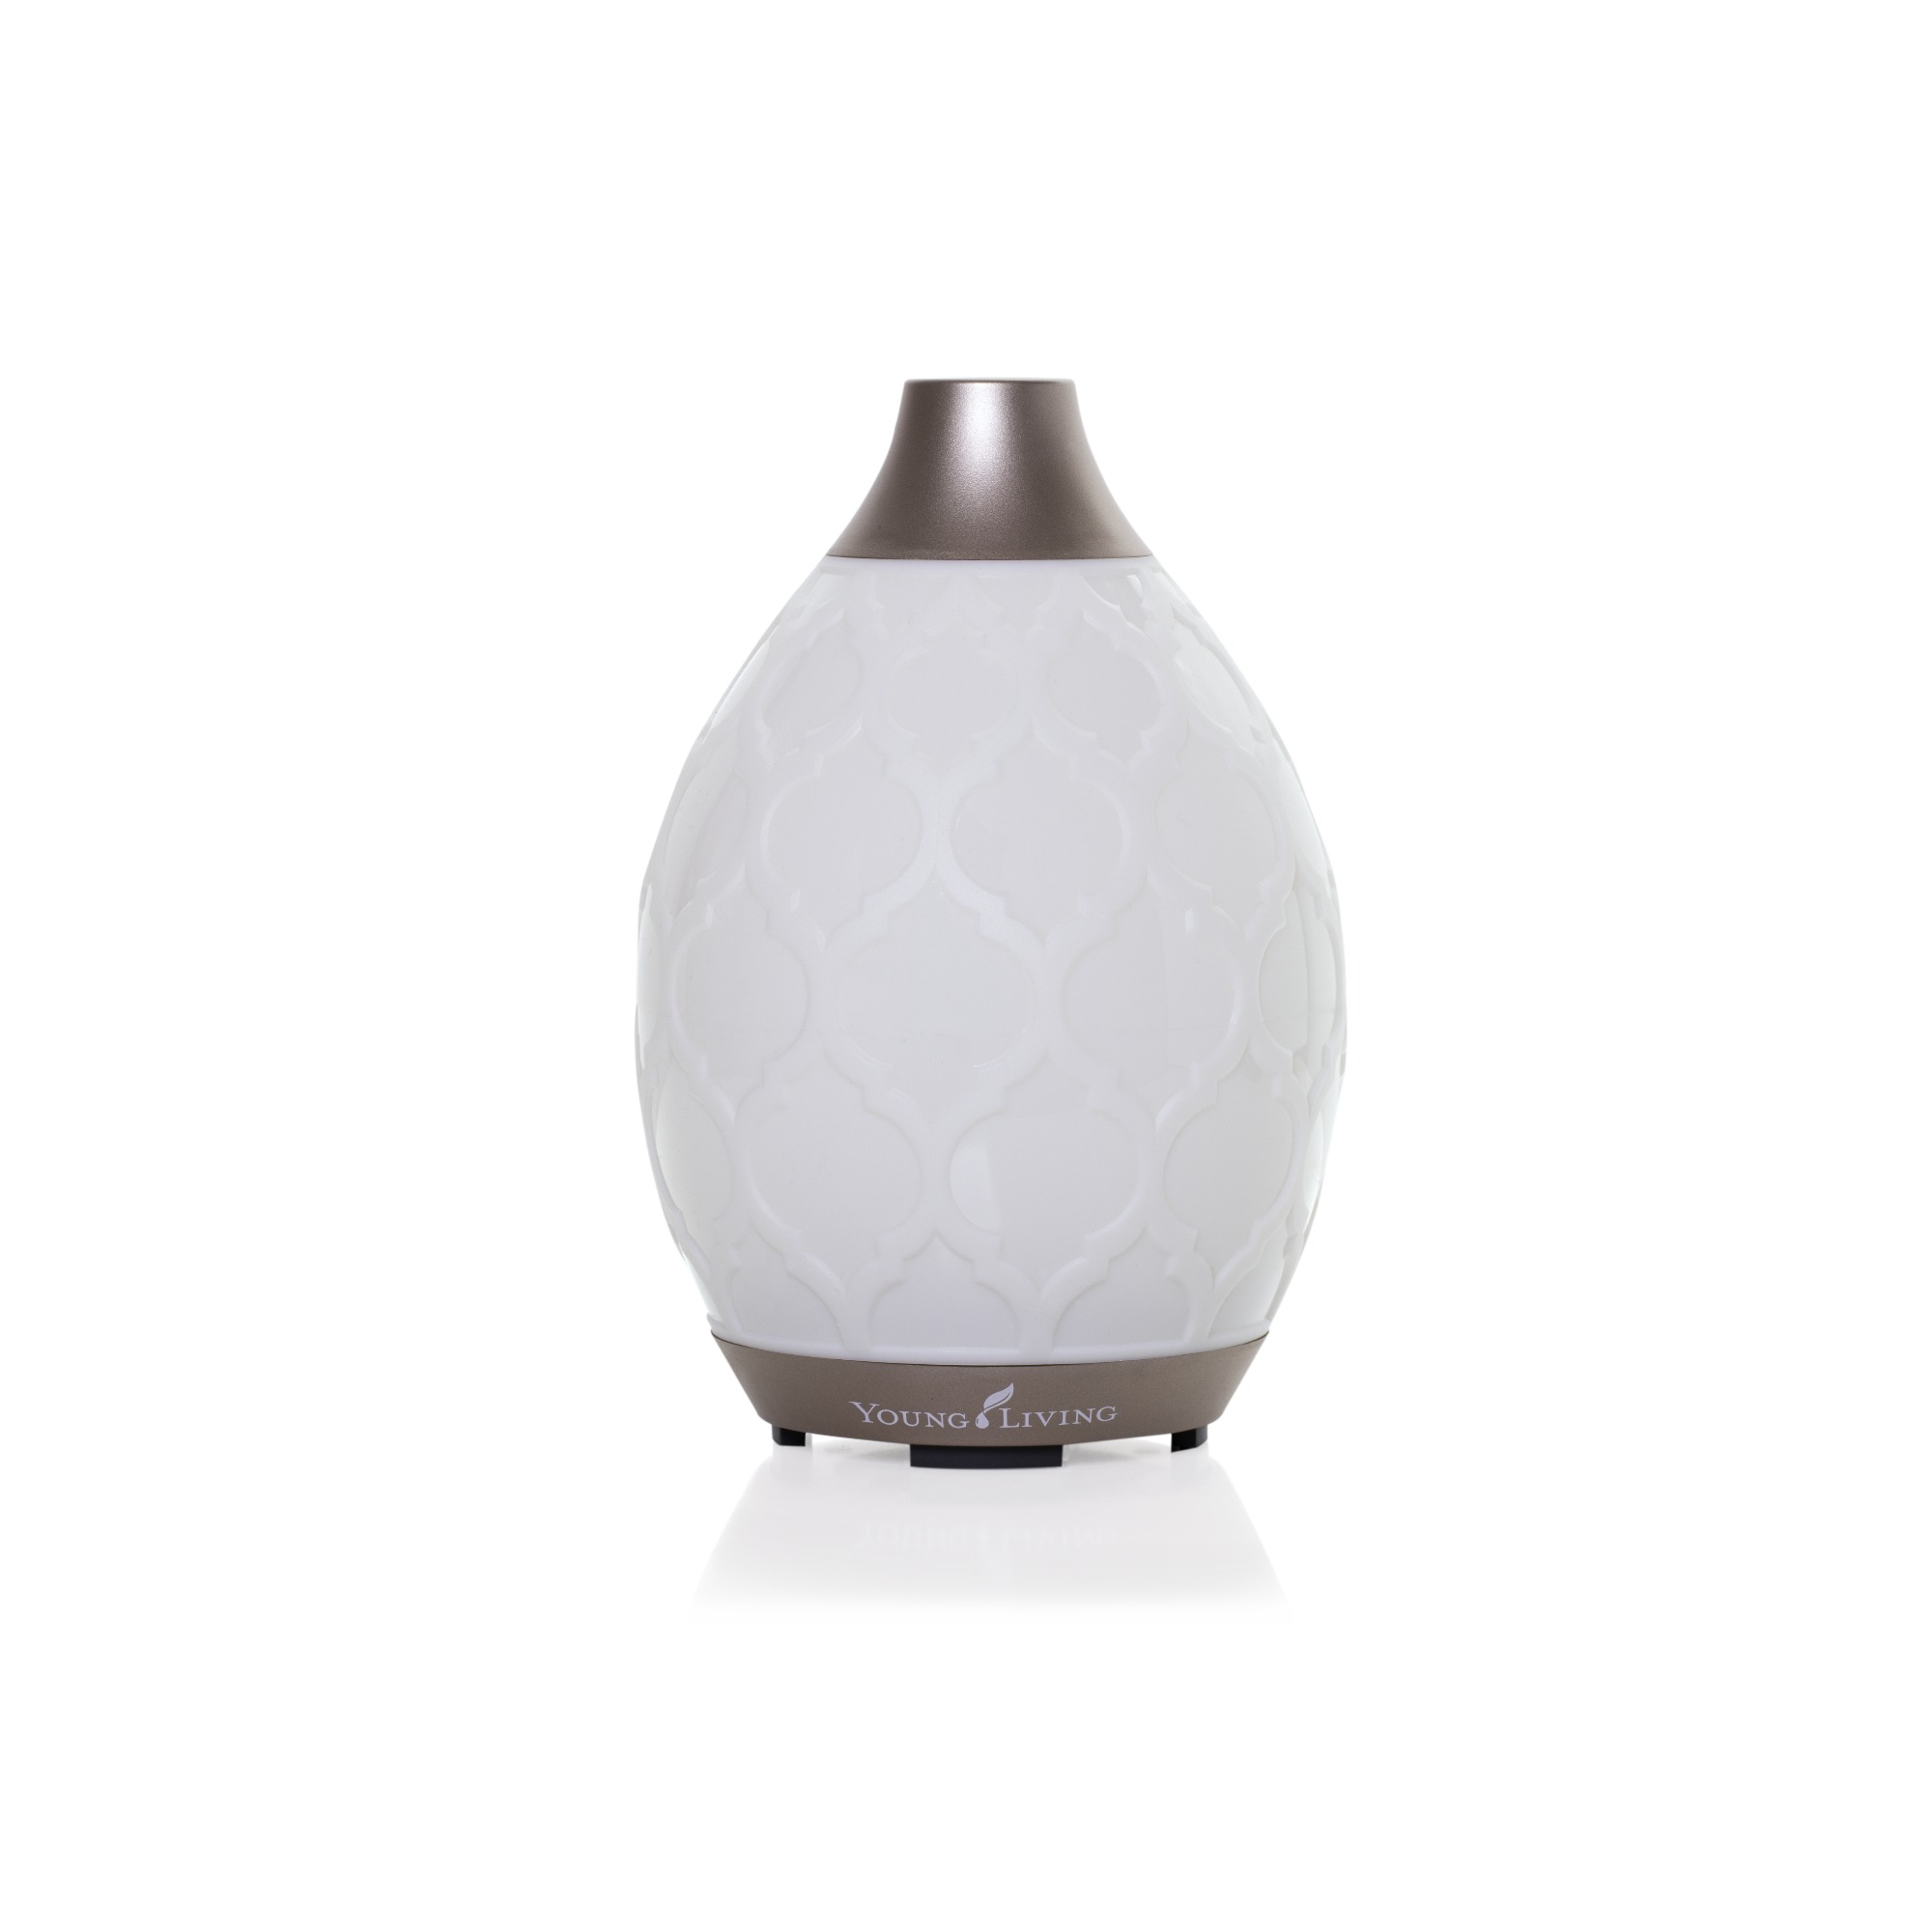 DESERT MIST DIFFUSER    This diffuser is one of the most popular Young Living has. The design features a romantic Moroccan trellis pattern. It functions as a humidifier, atomizer, and aroma diffuser. It is designed to run longer (up to 10 hours) and offer more features, including 10 LED colored light options and candle-like flicker mode. Comes with a 5ml bottle of Tangerine and Peppermint essential oils.   Click here   to learn more about this product.